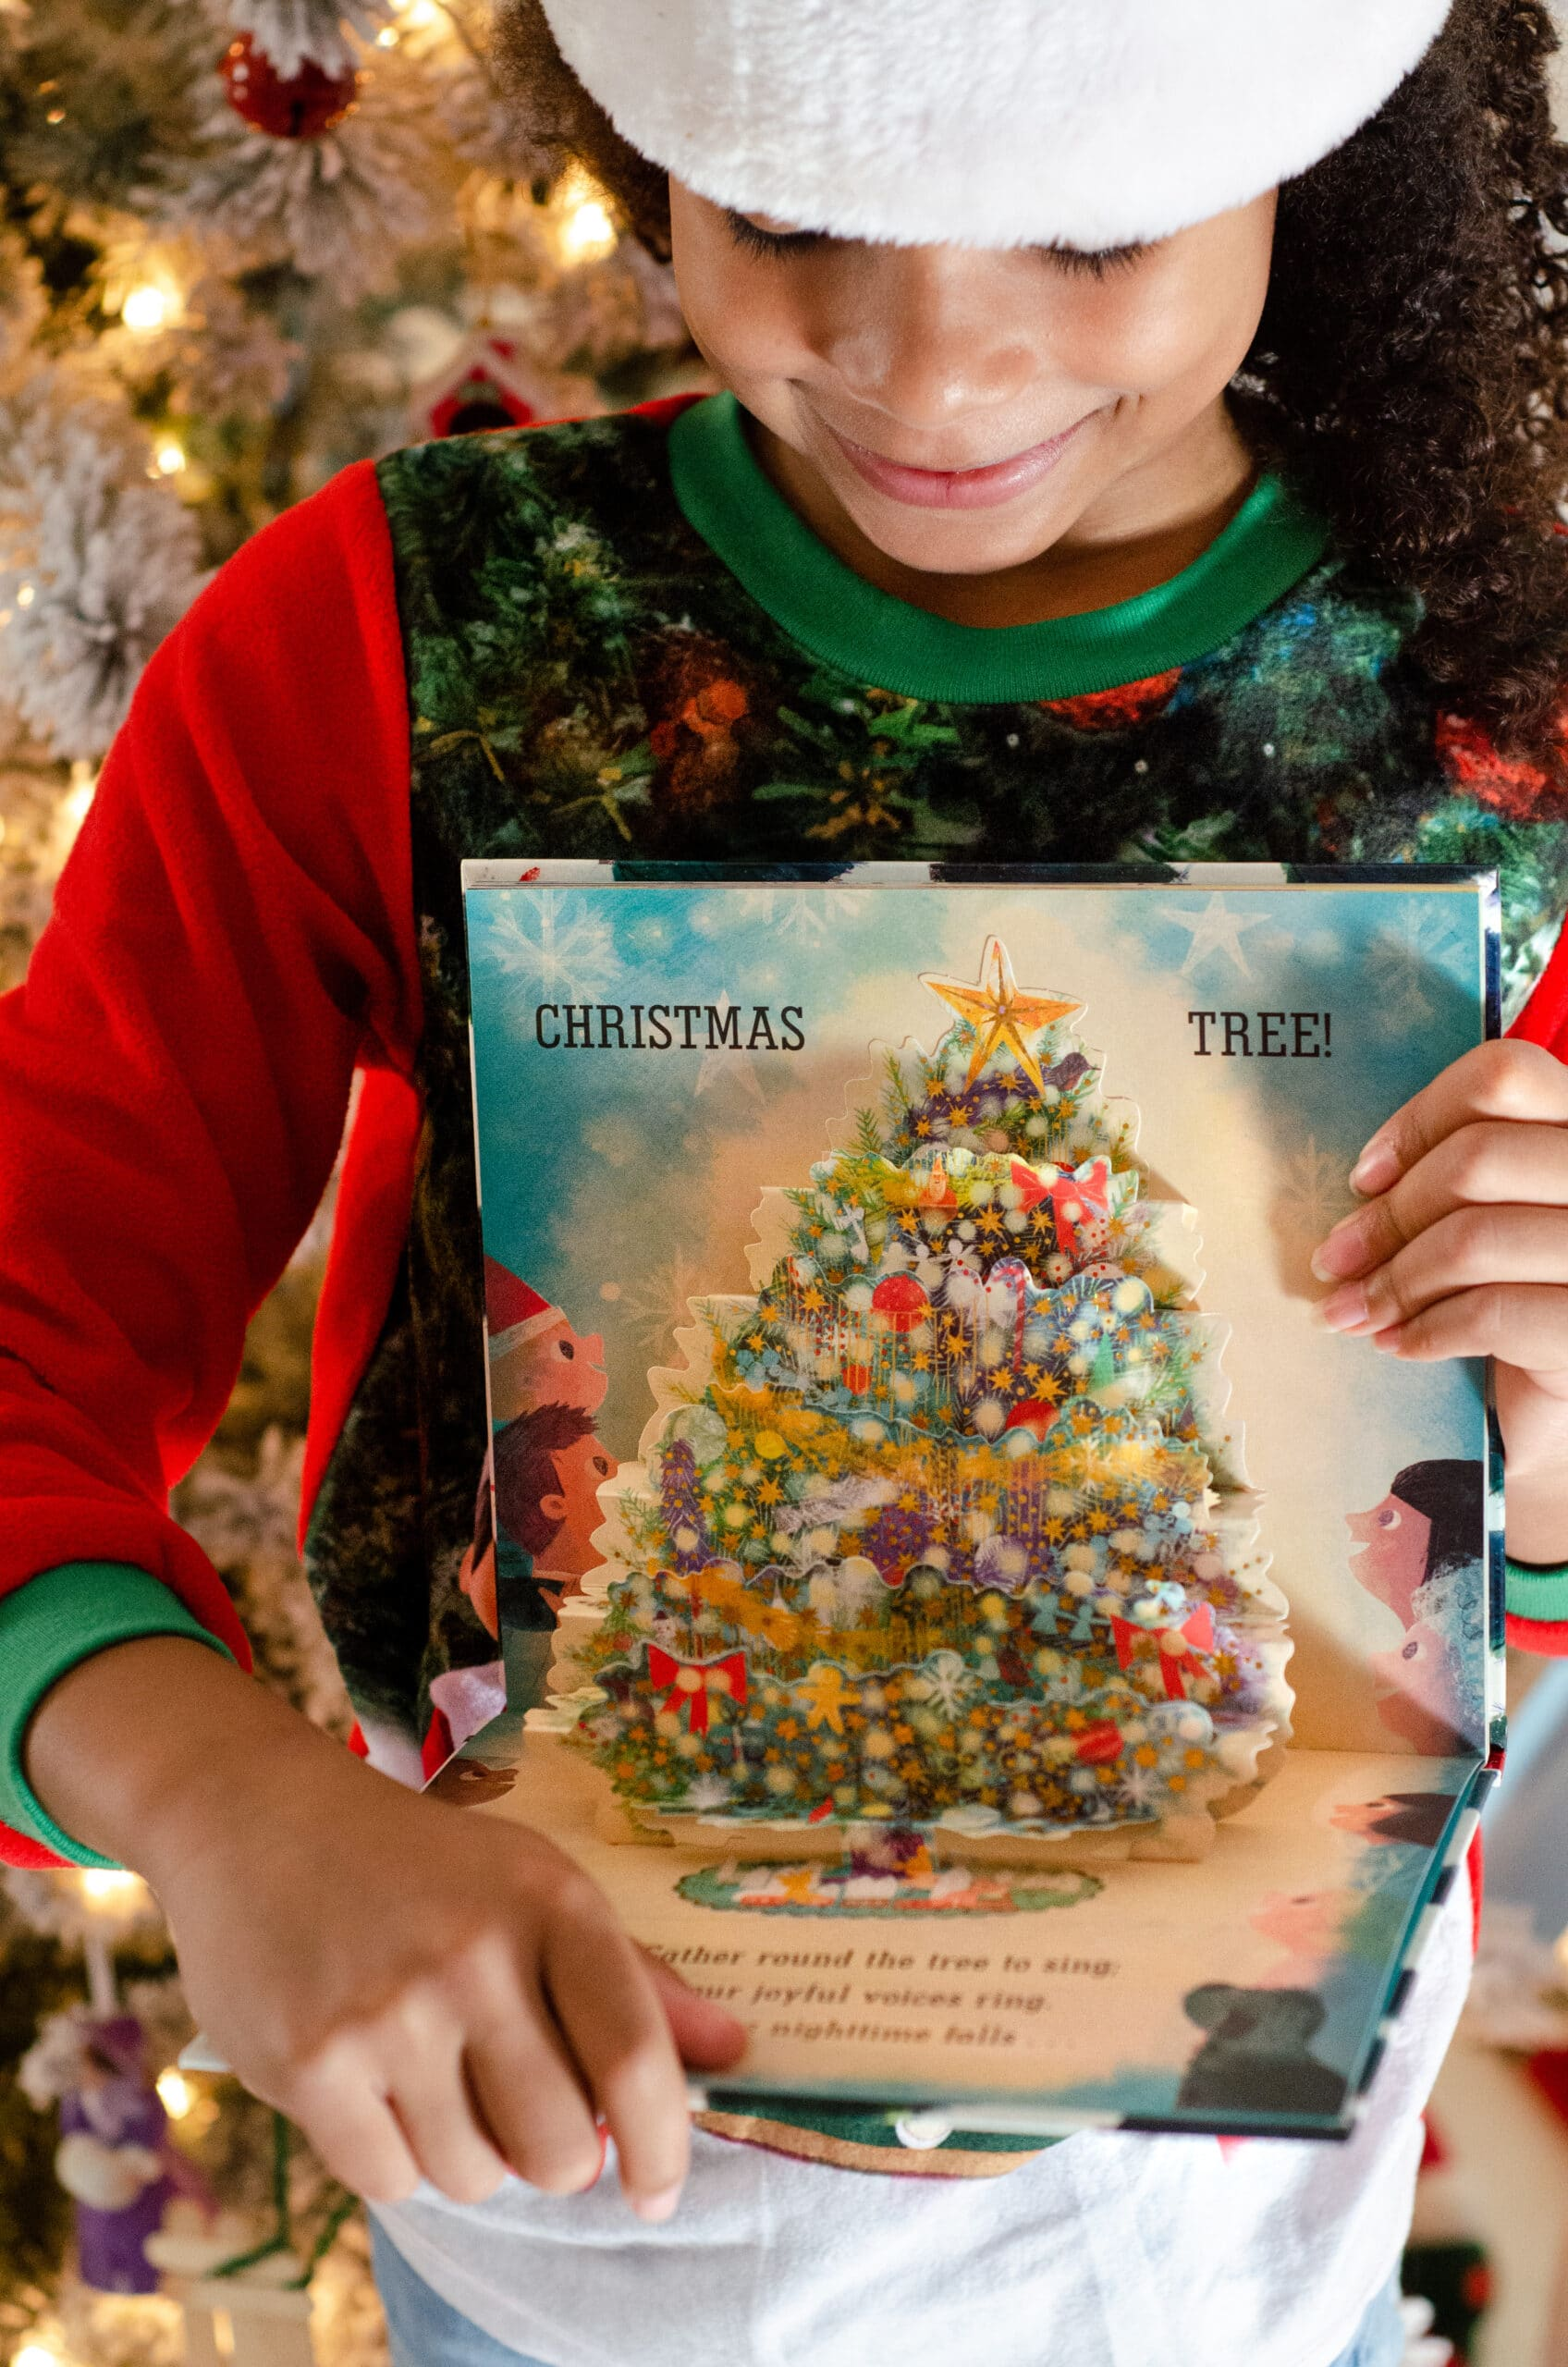 Pick A Pine Tree Pop Up Christmas Tree Book. Give the gift of literature this holiday season! These wonderful holiday books for kids make great stocking stuffer gifts. Create your very own Christmas Tree Advent Calander using these Children's holiday books, simply stack them into a tree for a new fun holiday tradition.